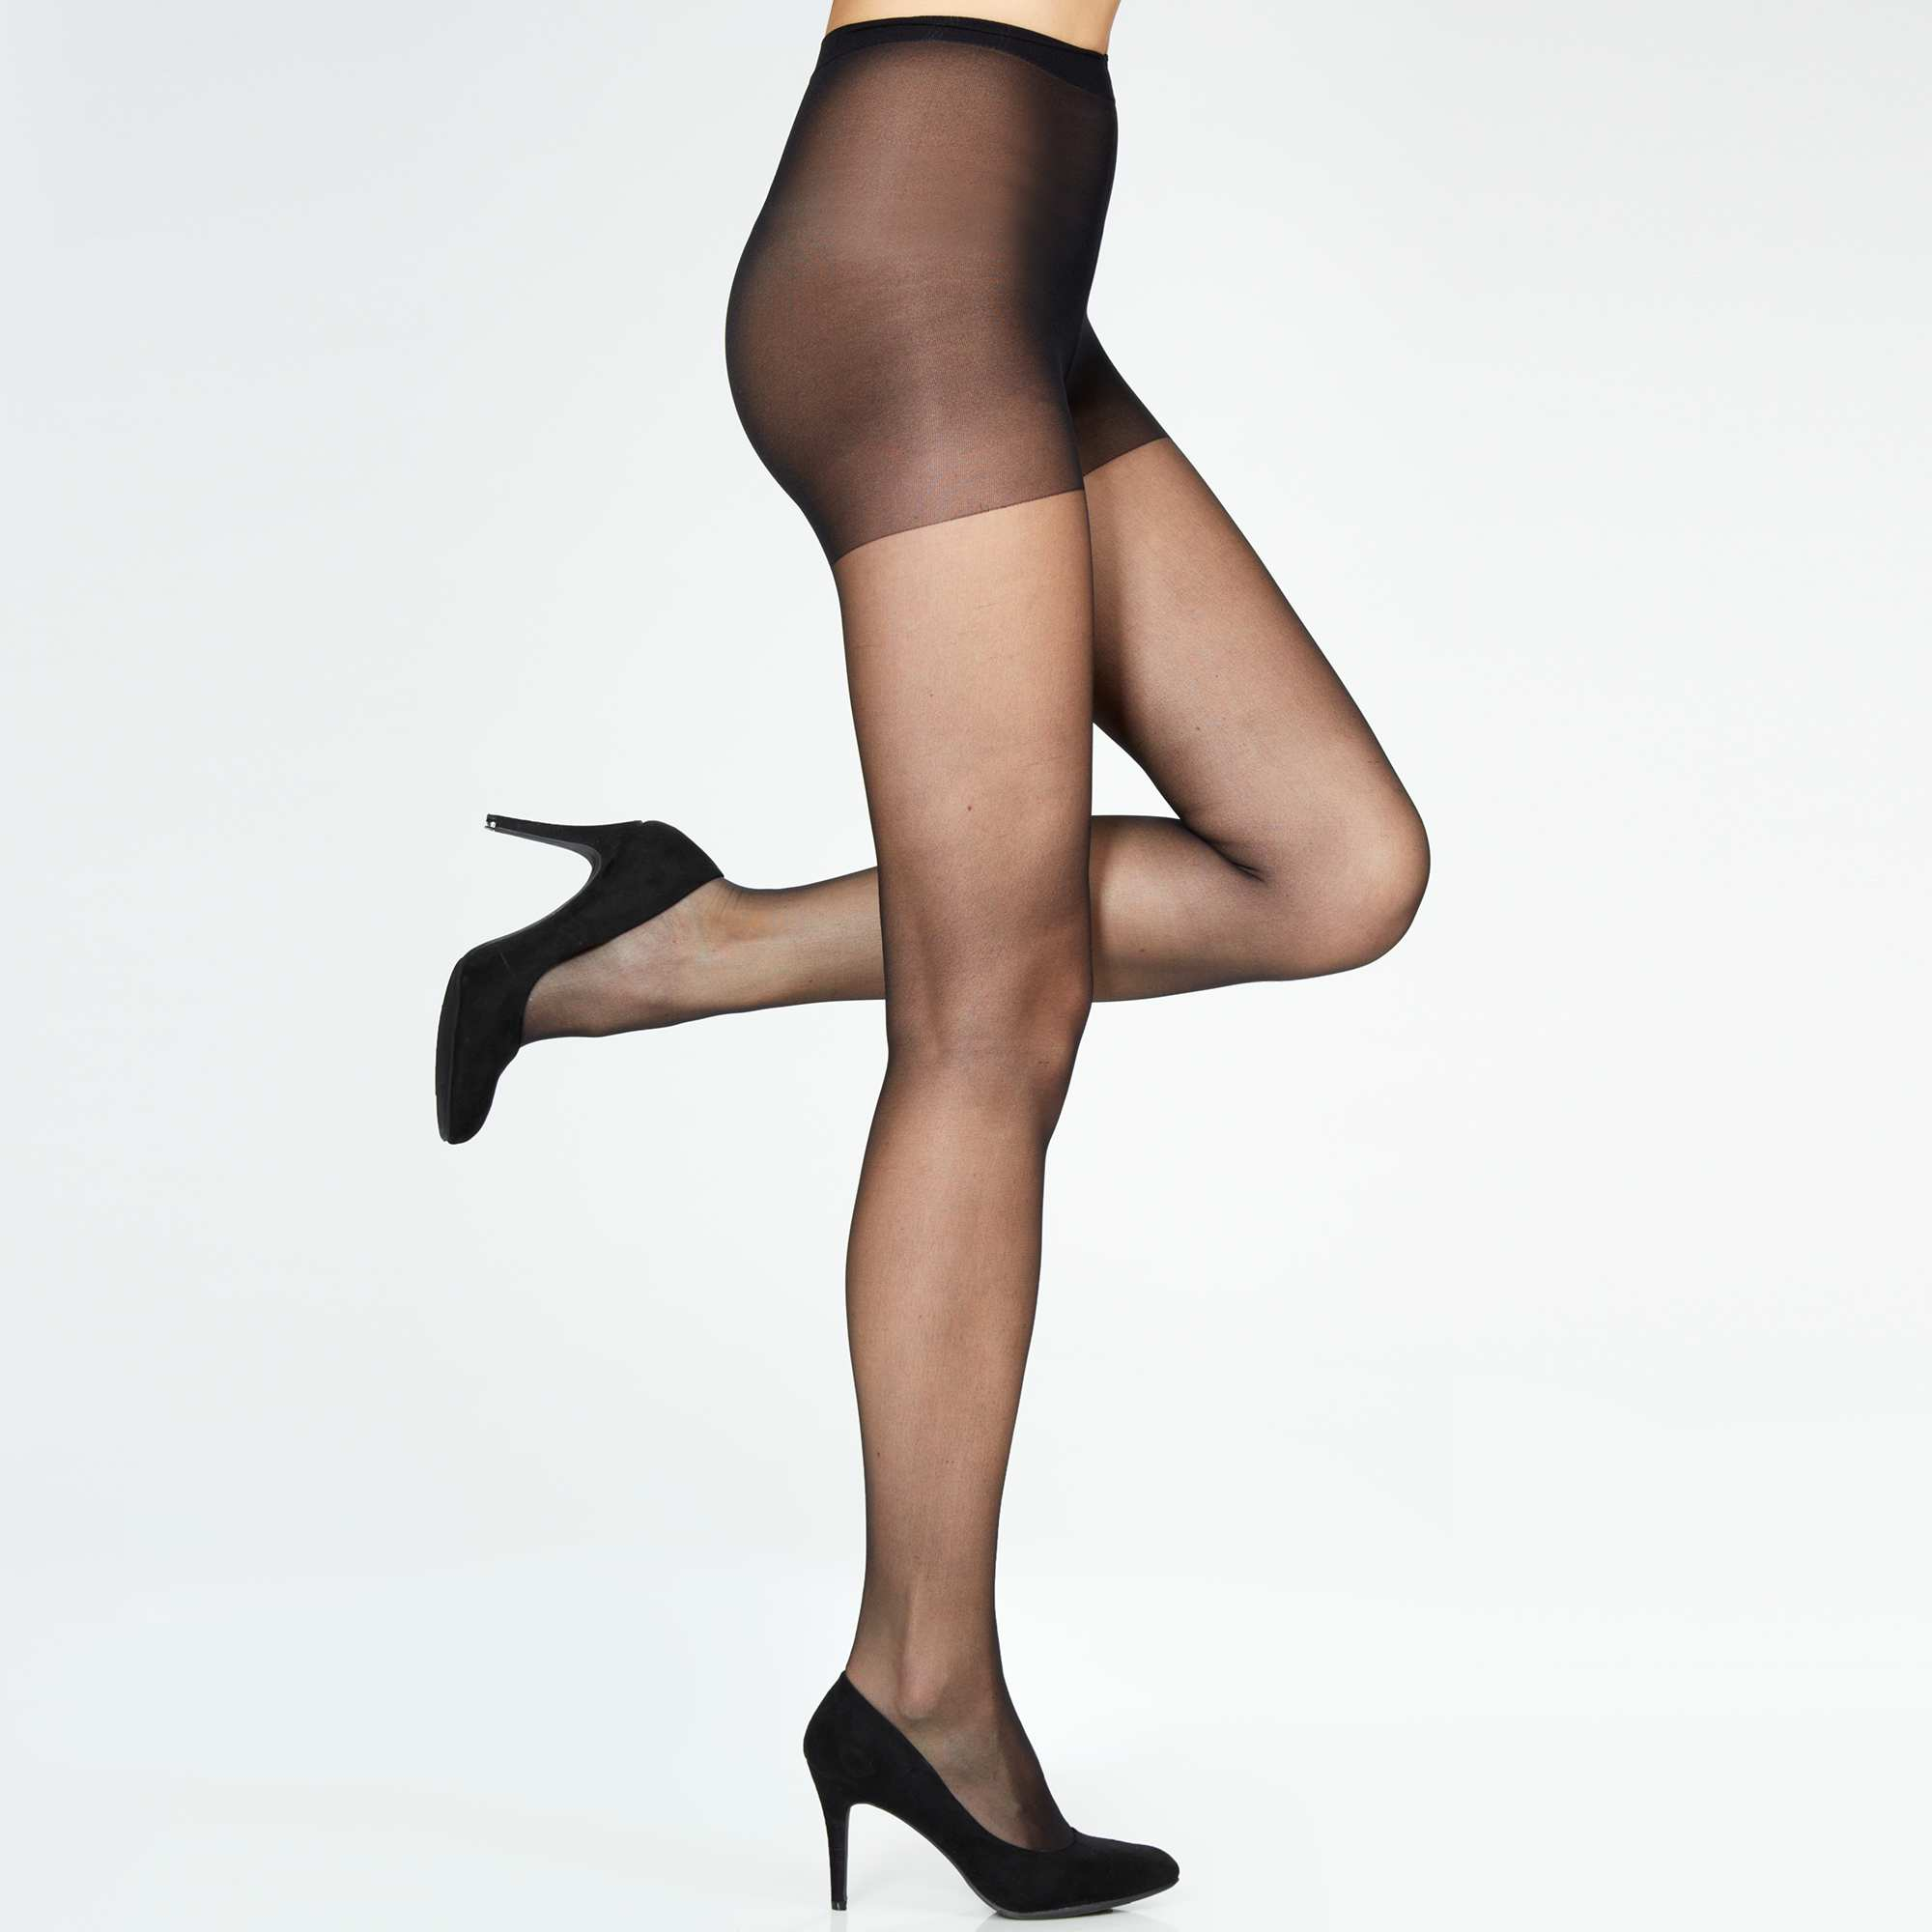 Collant Grossesse - Collants, Lingerie gainante - comparer